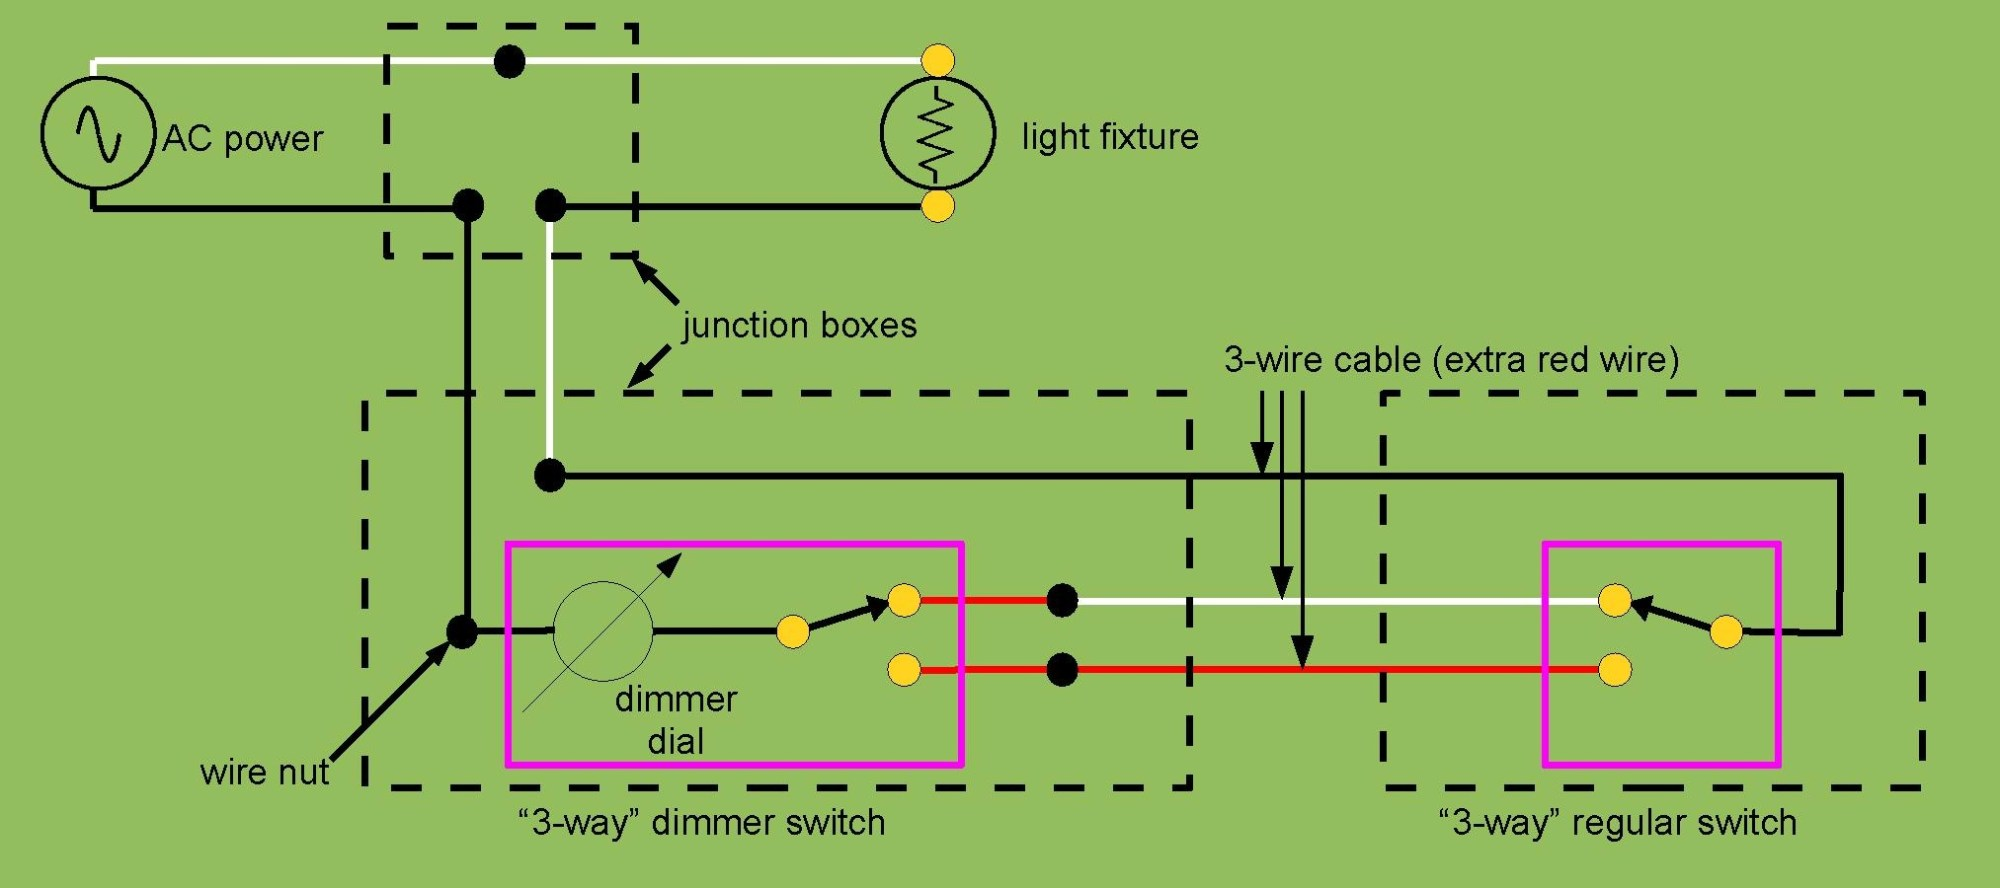 hight resolution of file 3 way dimmer switch wiring pdf wikimedia commons 3 way light switch wiring diagram pdf switch wiring diagram pdf